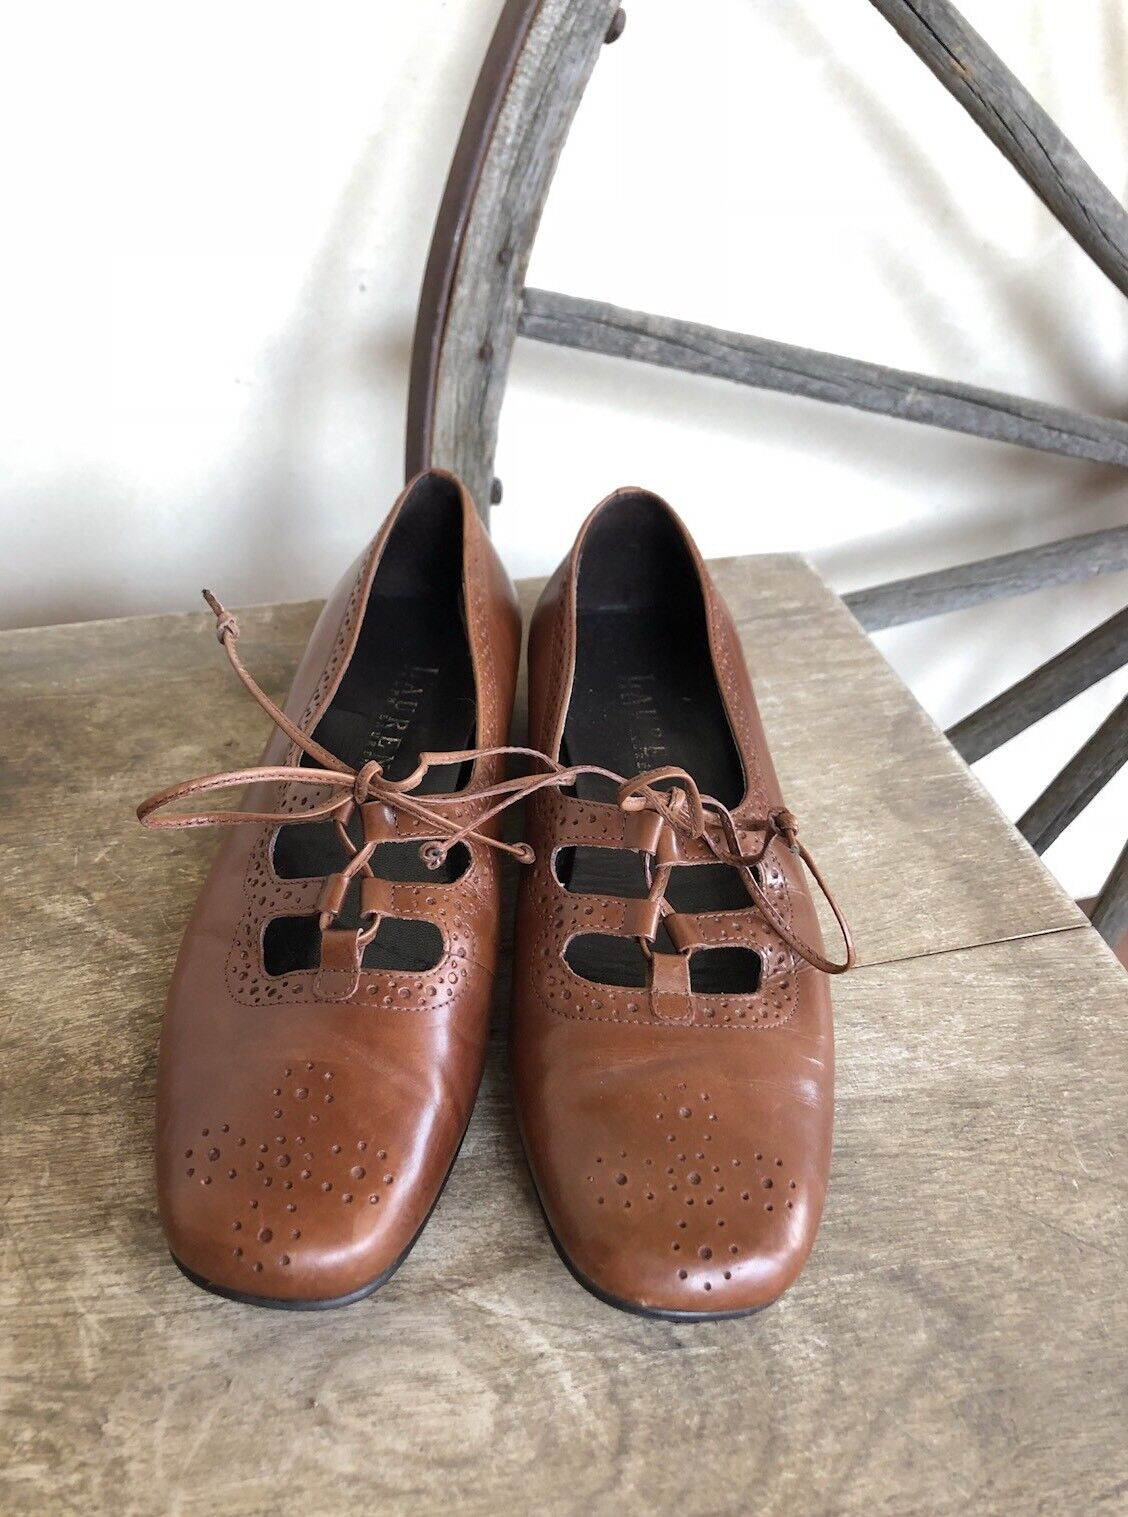 RALPH LAUREN Rare Designer Sample scarpe Tan Leather Classic Lace-Up Flats Sz 6B